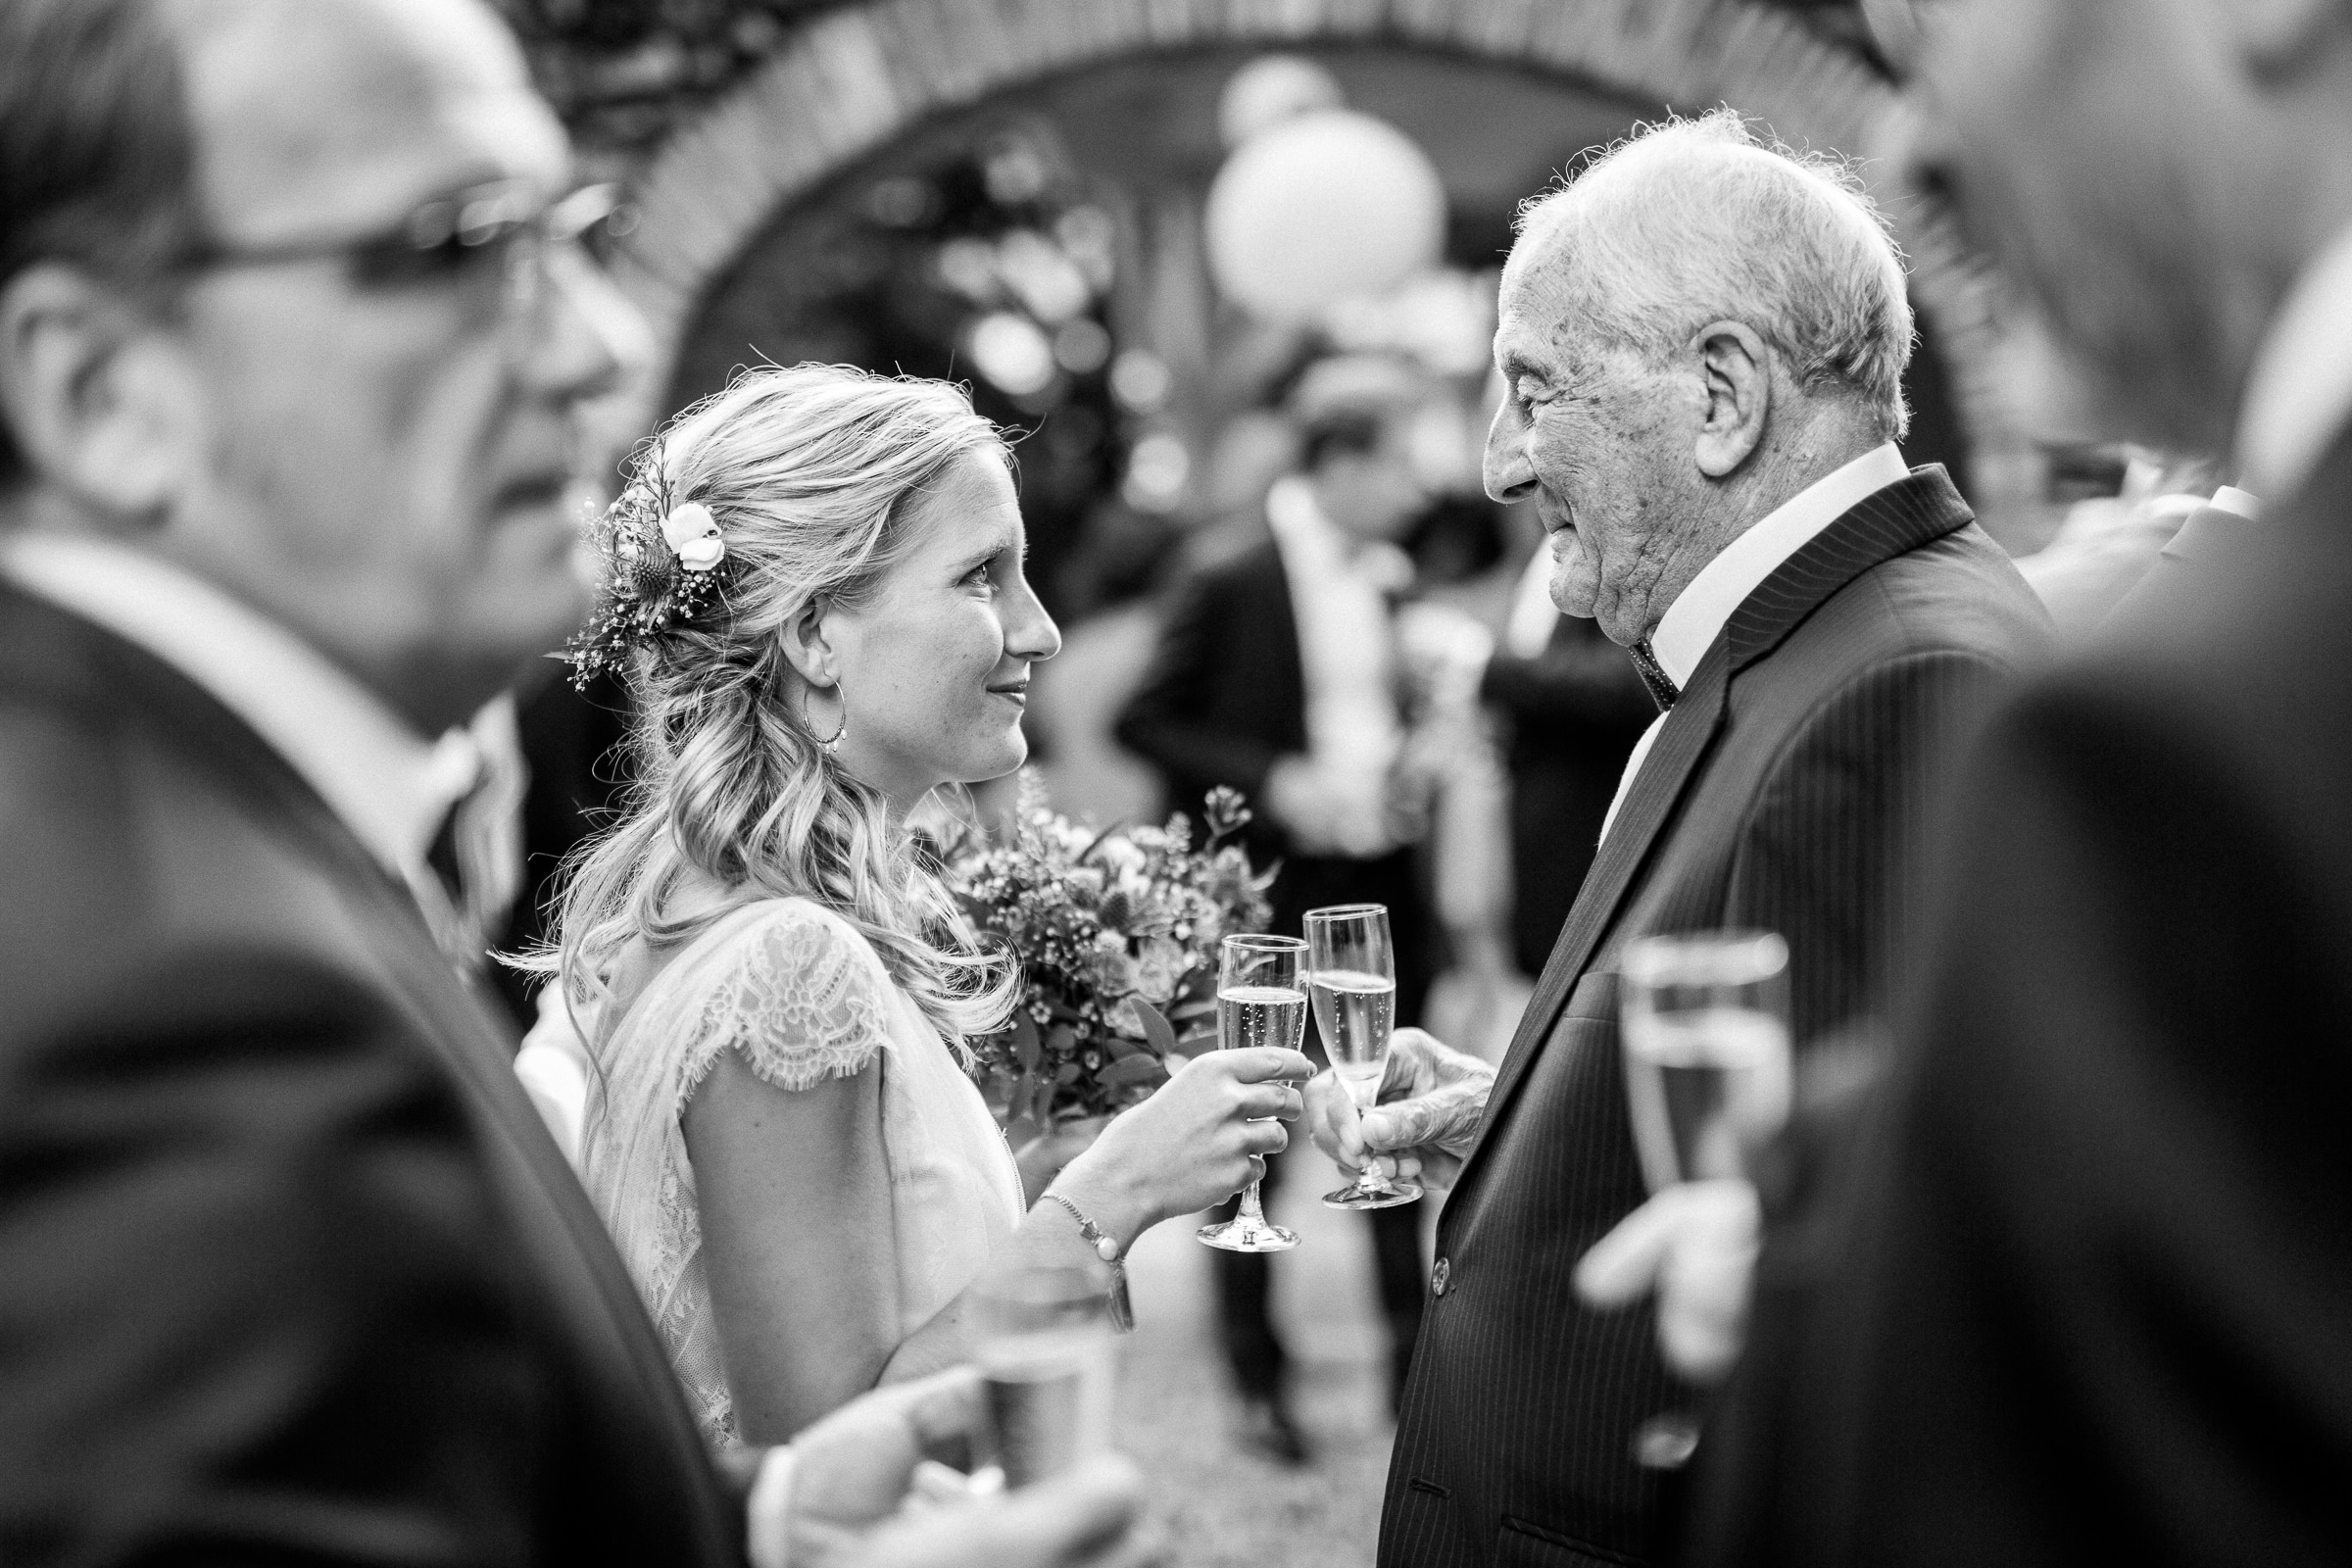 Bride and her grandfather share tearful smiles - photo by Sylvain Bouzat - France